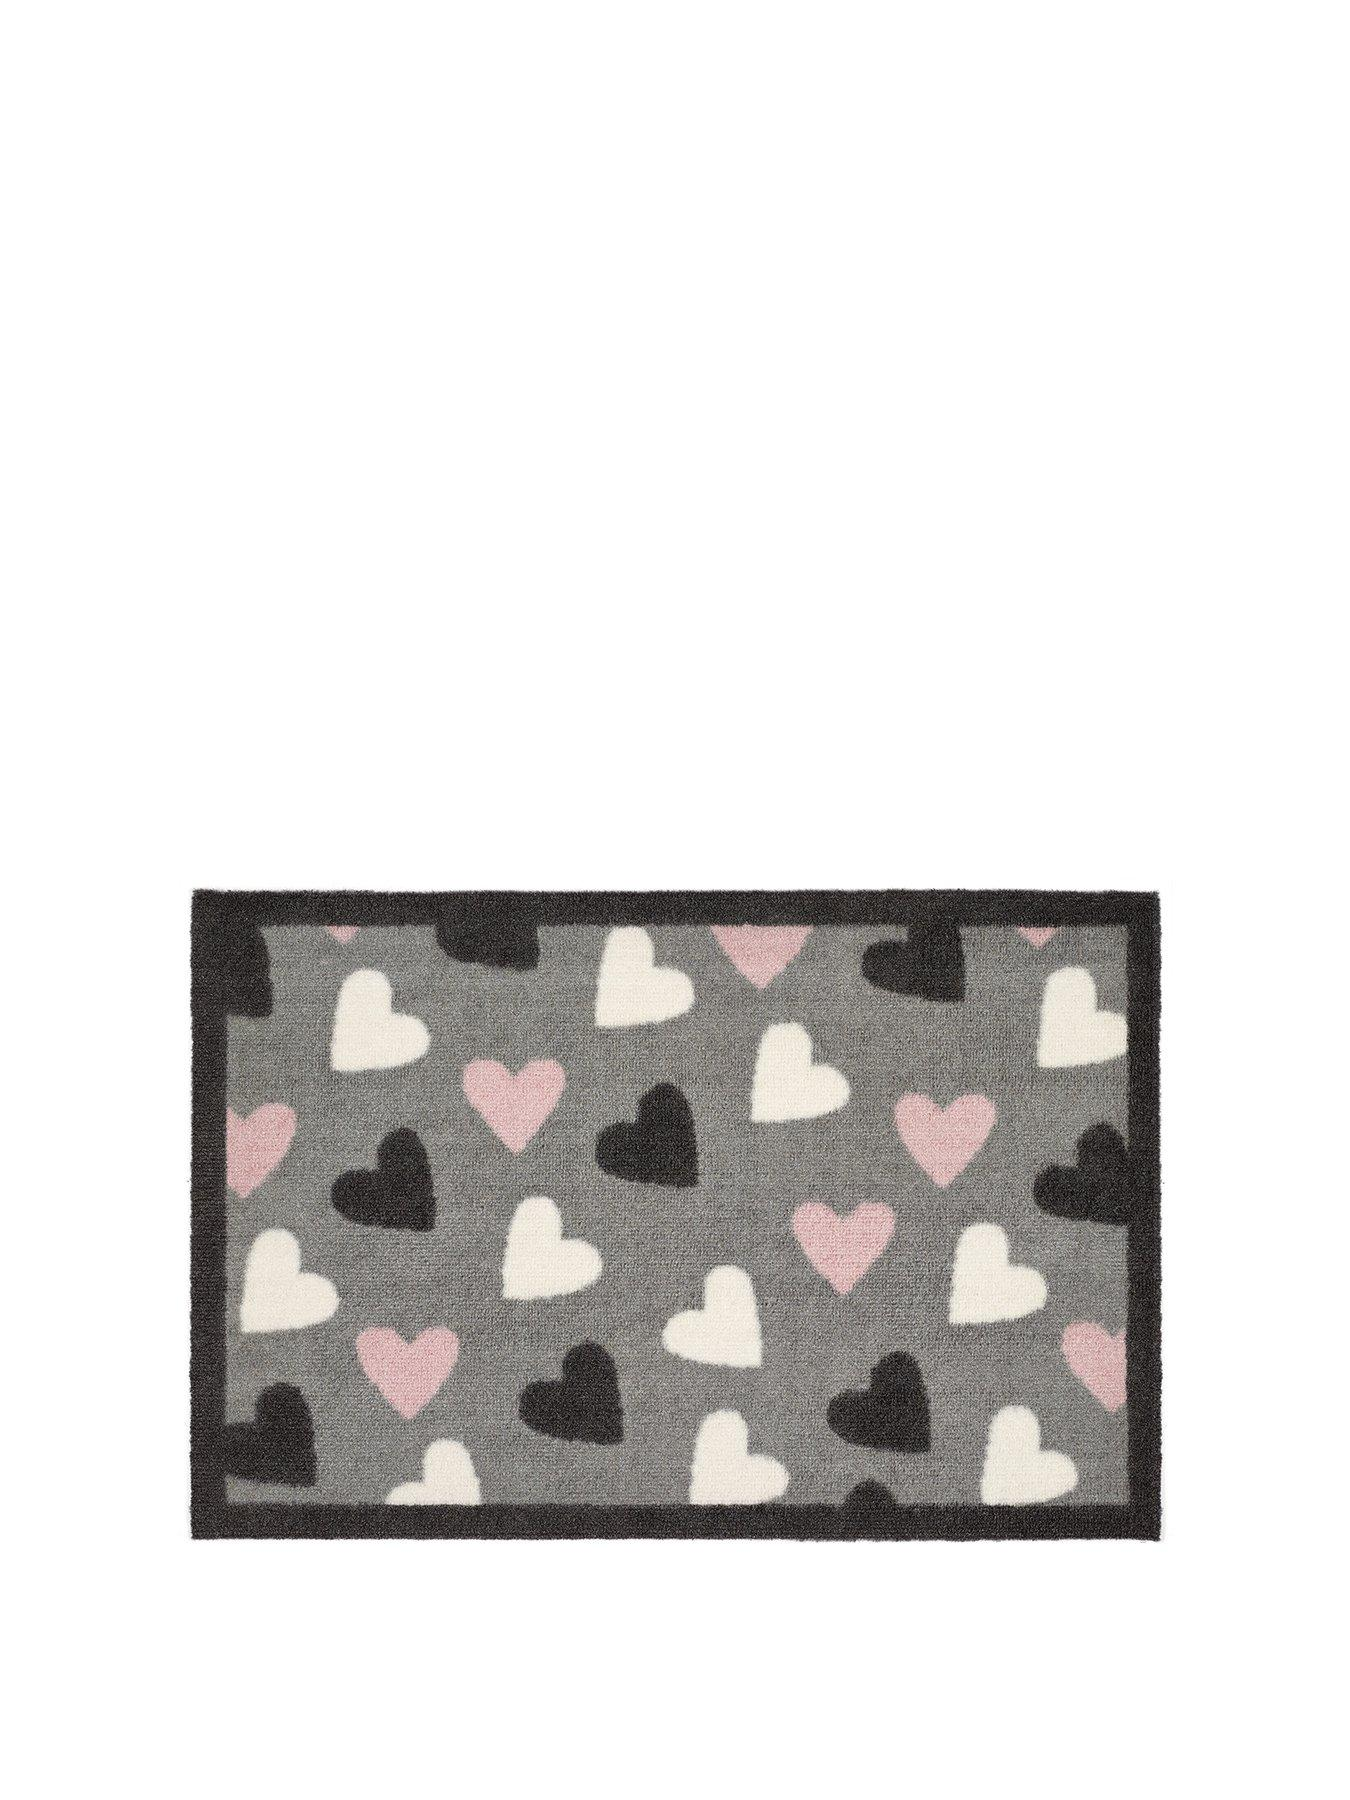 kitchen rugs and mats diy counters carpets flooring home garden www littlewoods com heart indoor doormat